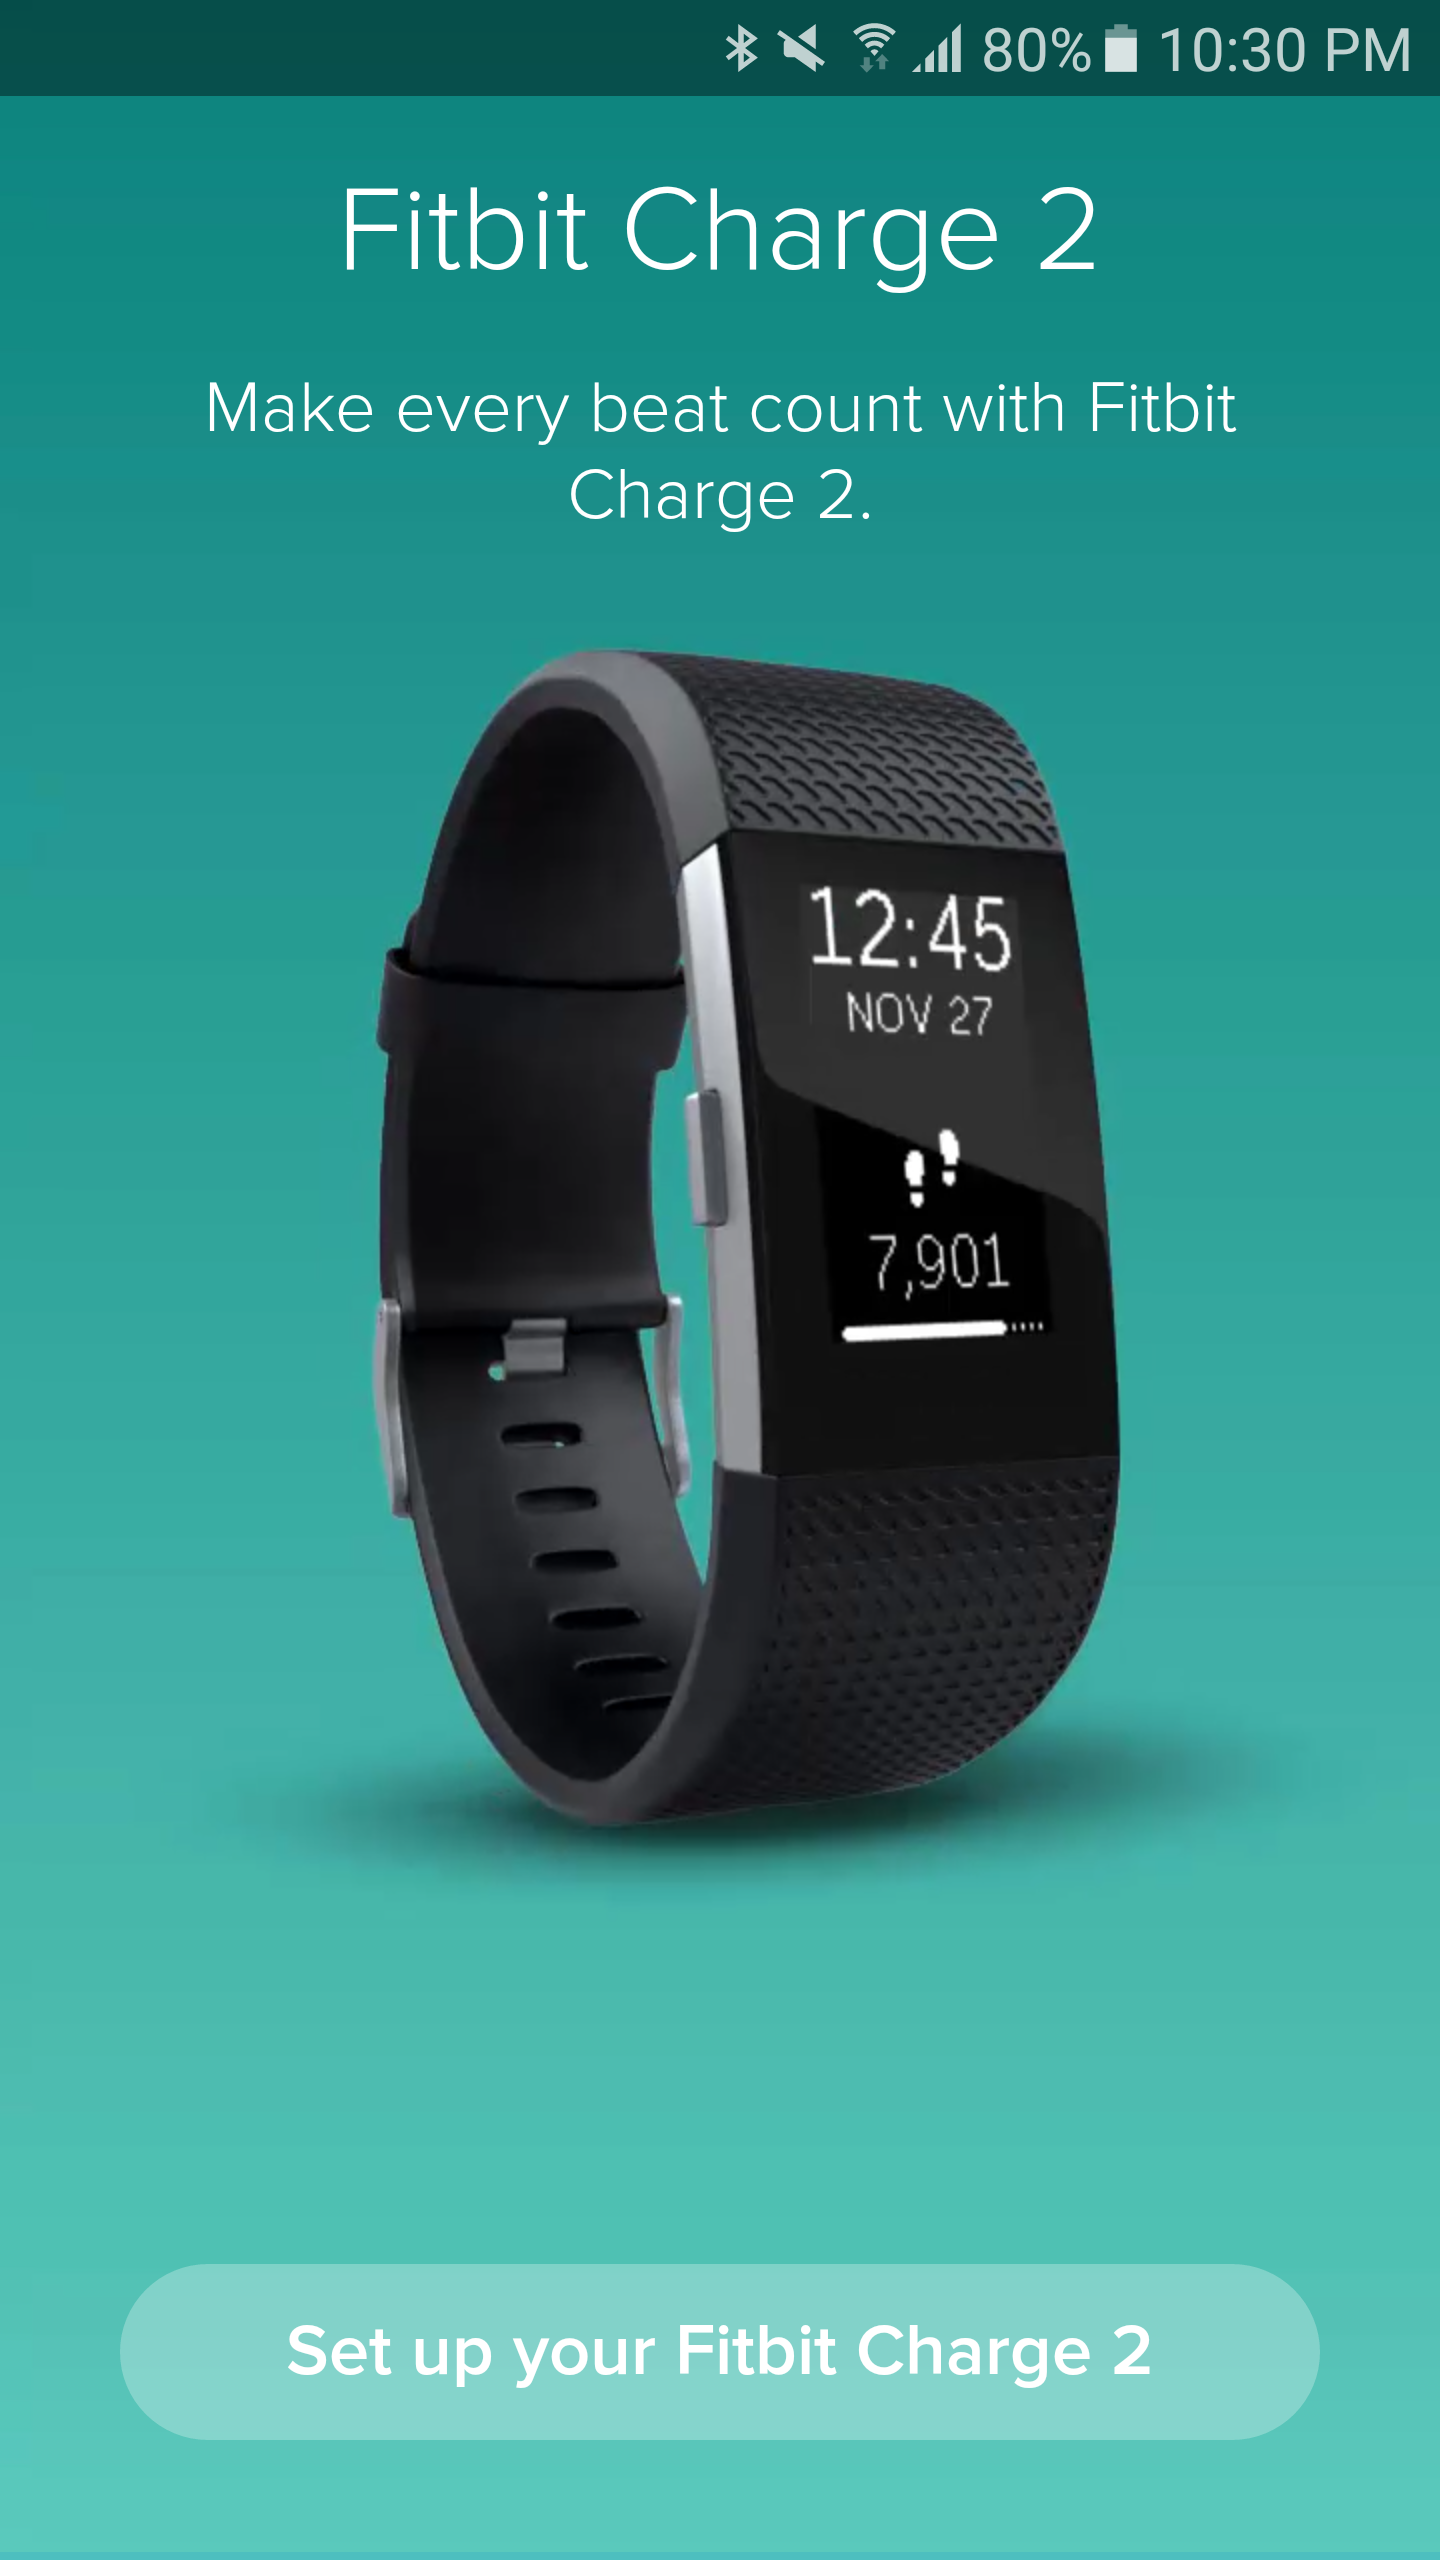 fitbit-charge2-setup-3